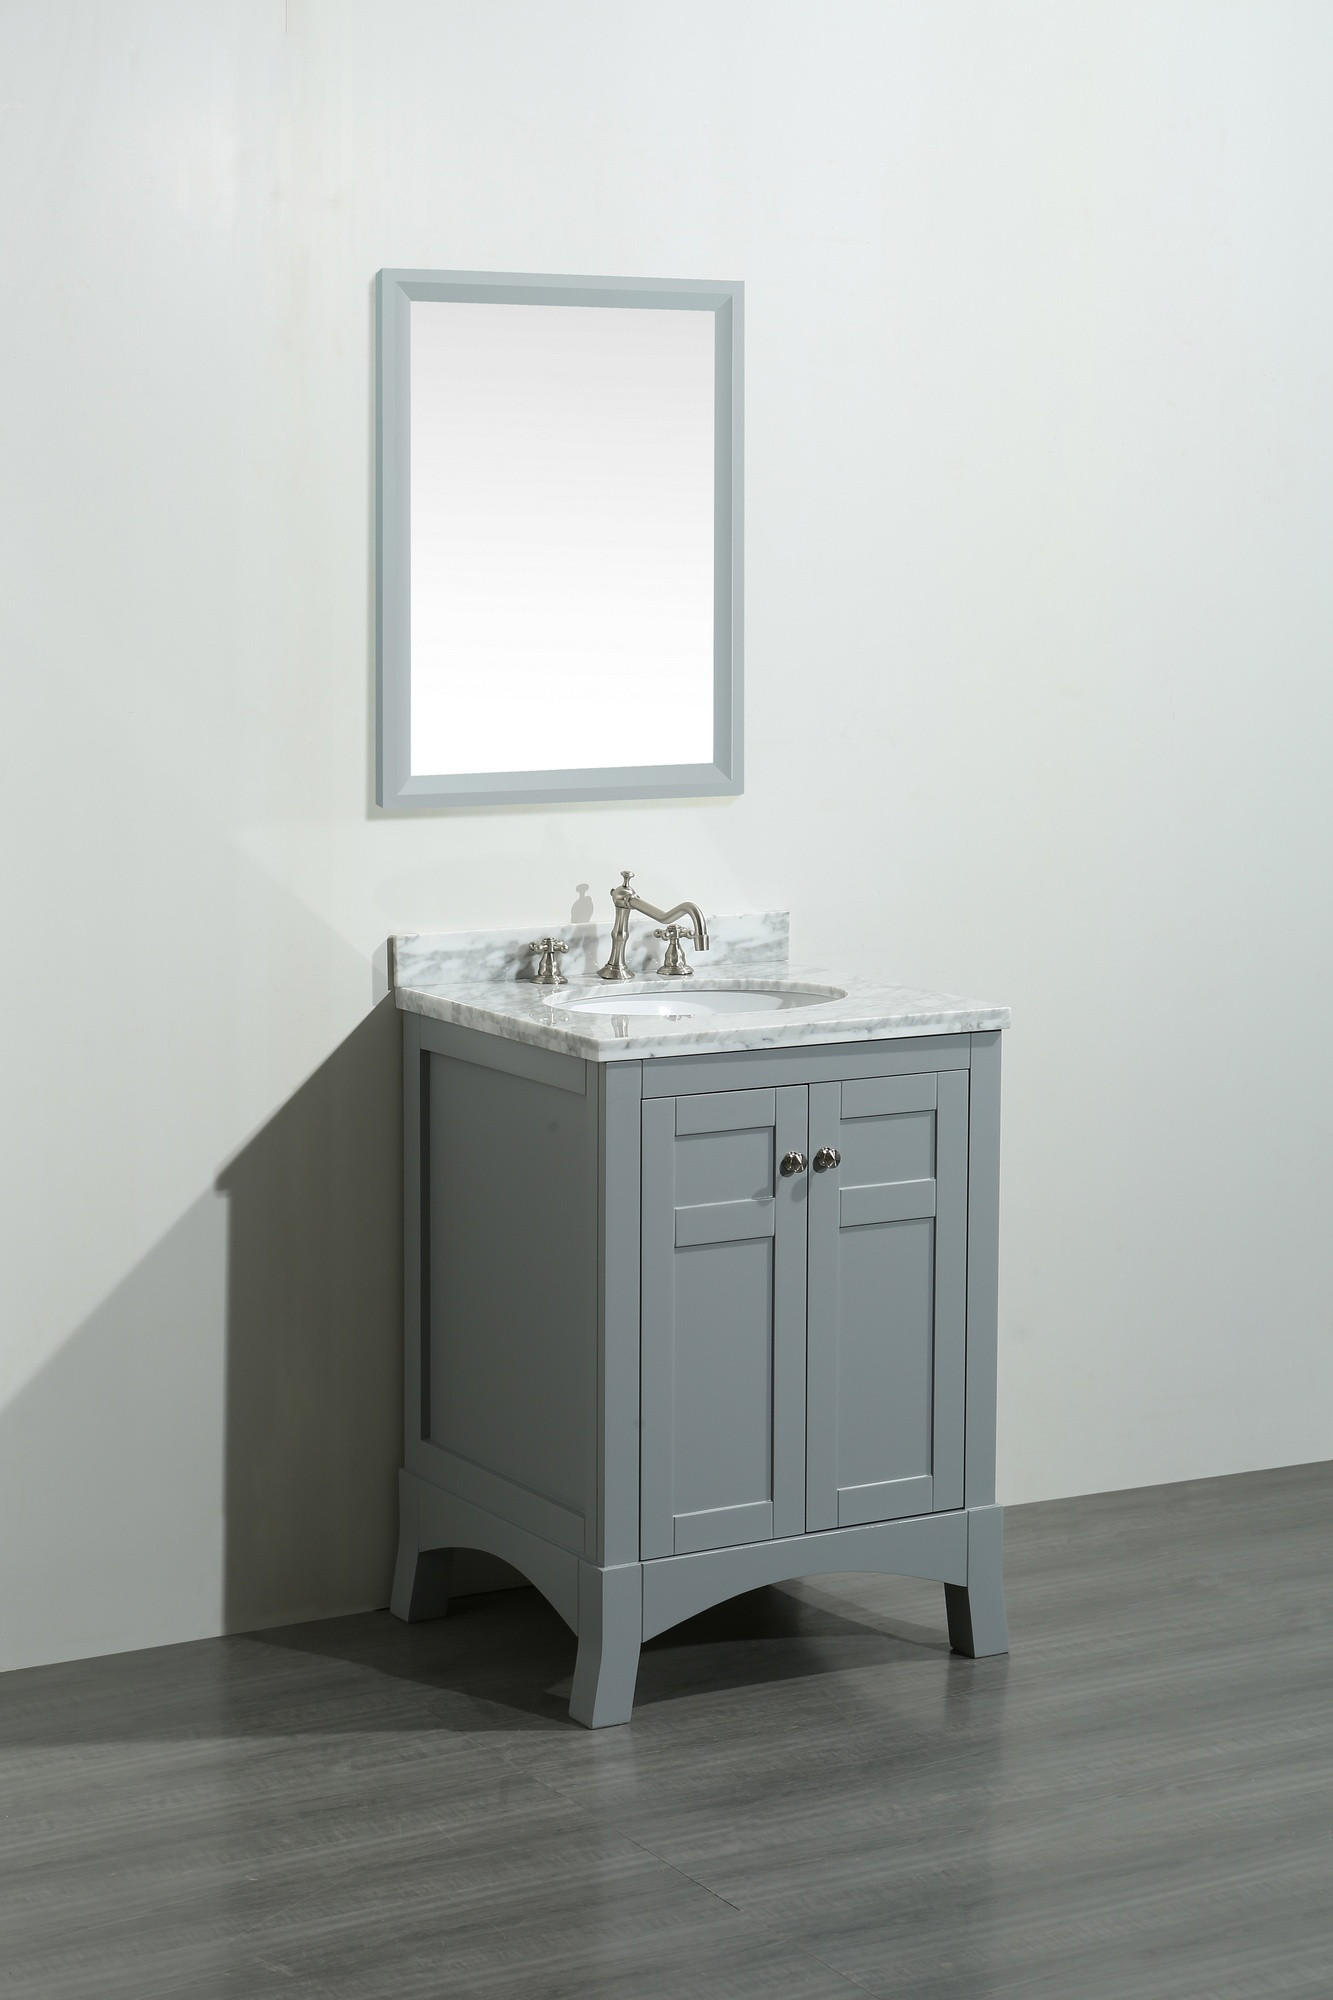 Eviva Evvn514 24 New York 24 Inch Bathroom Vanity With White Marble Carrera Countertop And Sink